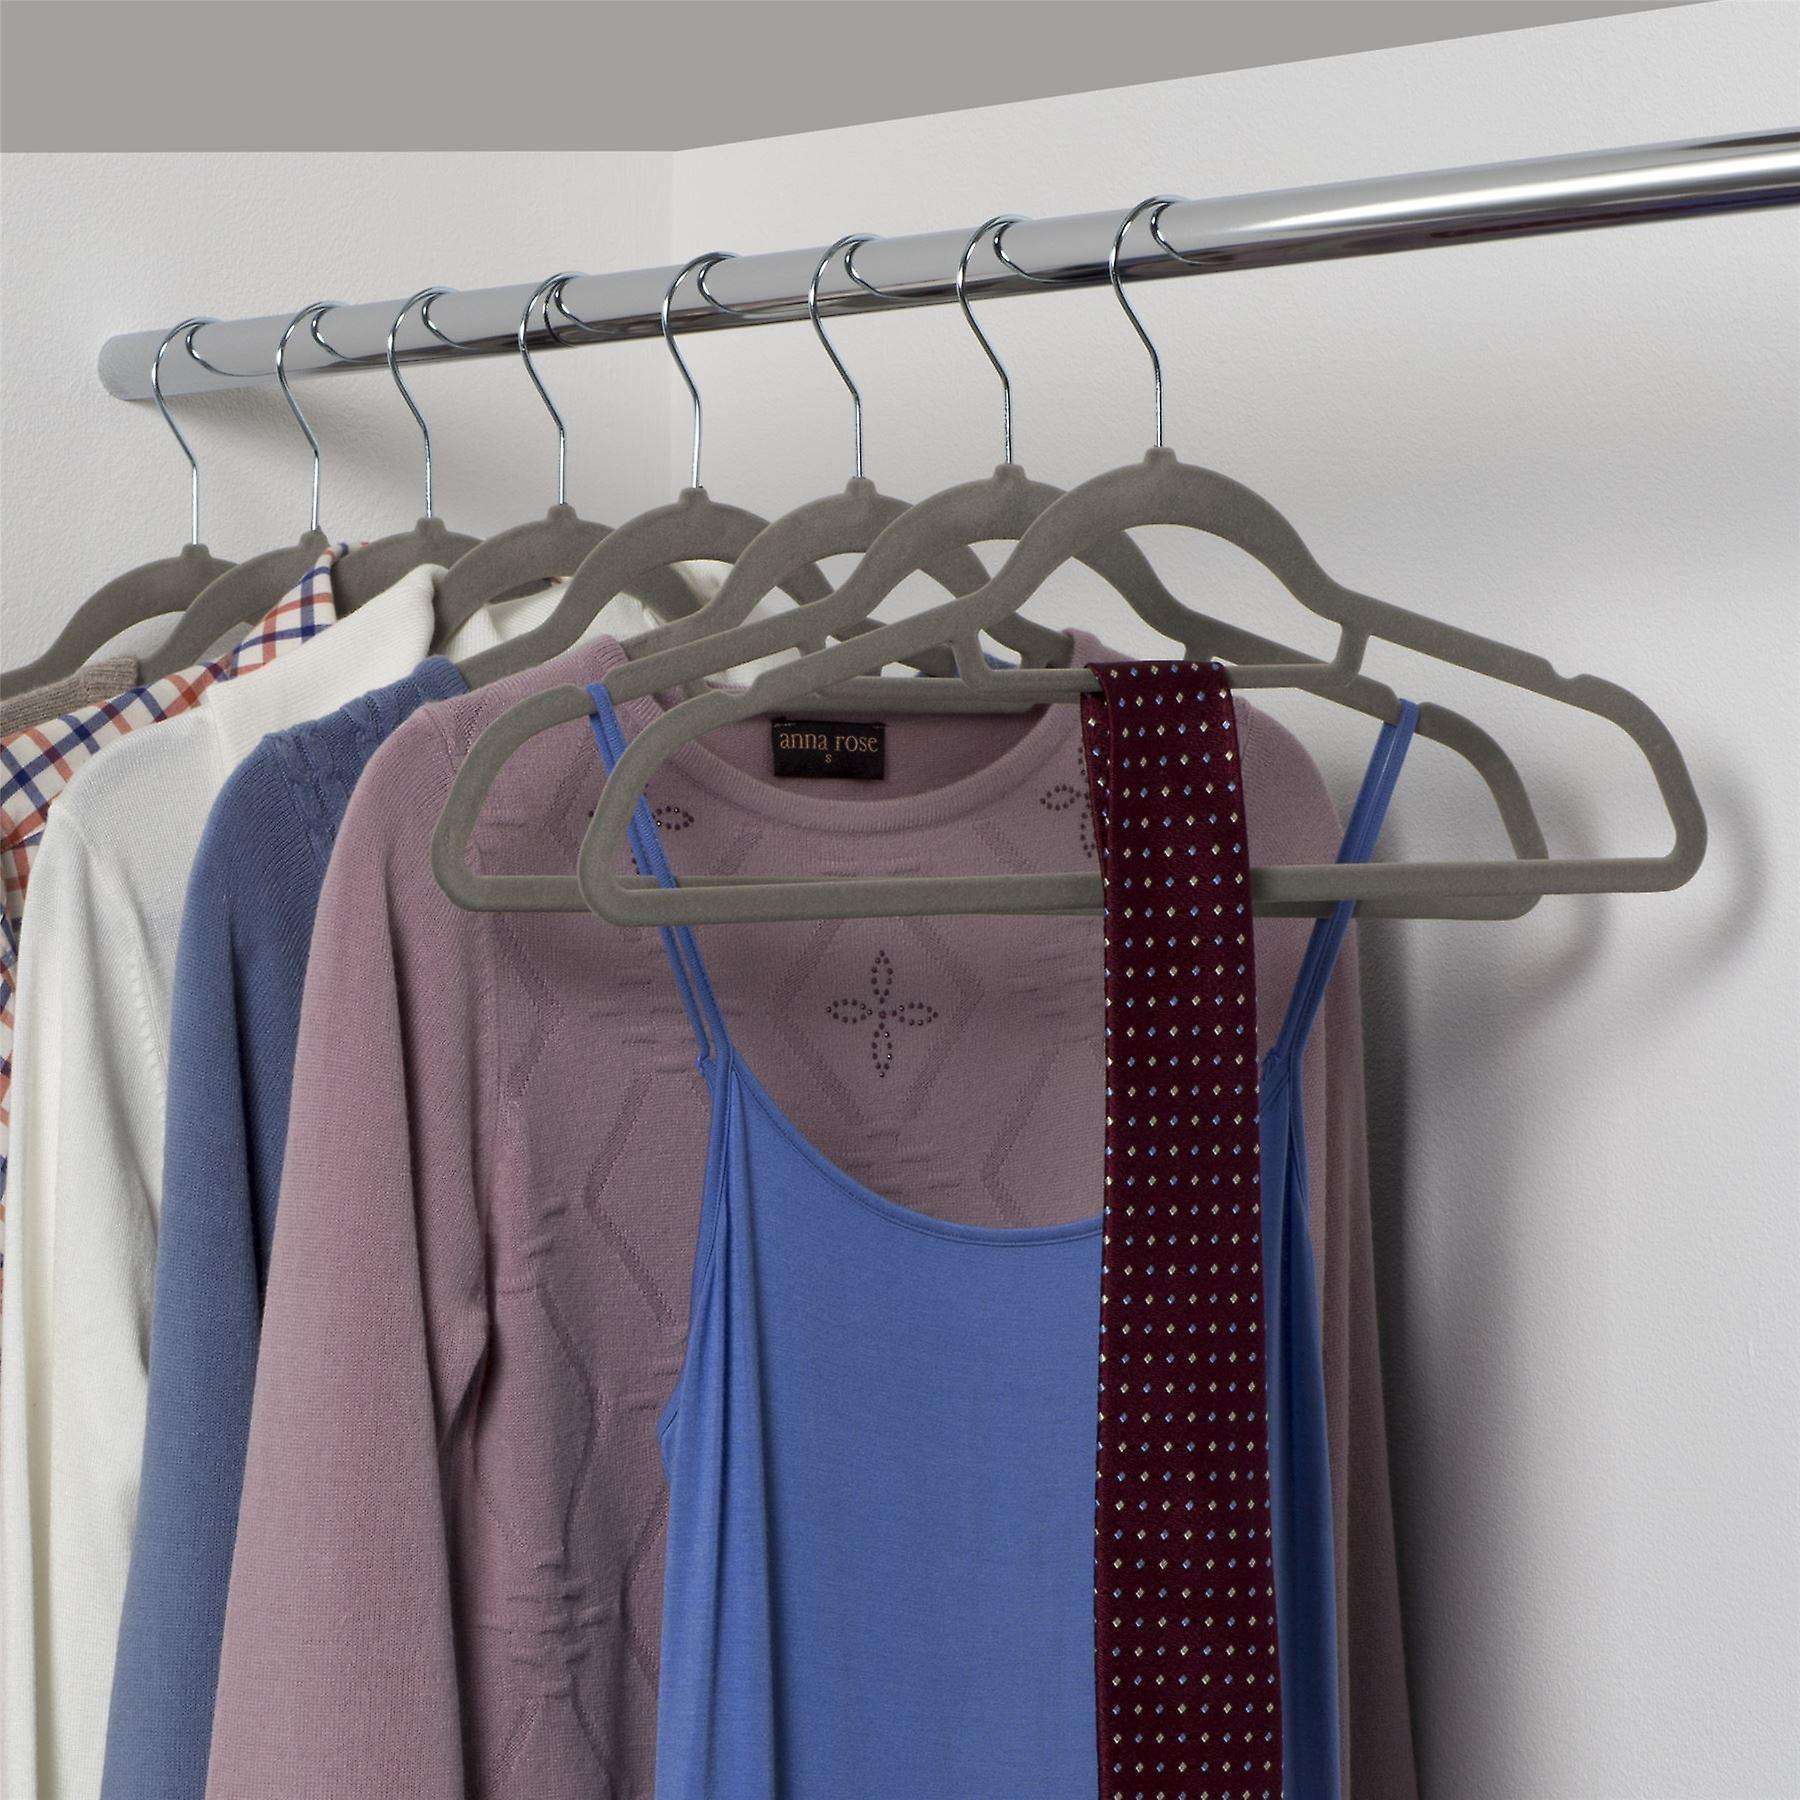 Set of 20 Grey Velvet Suit Hangers with Notches and Bar